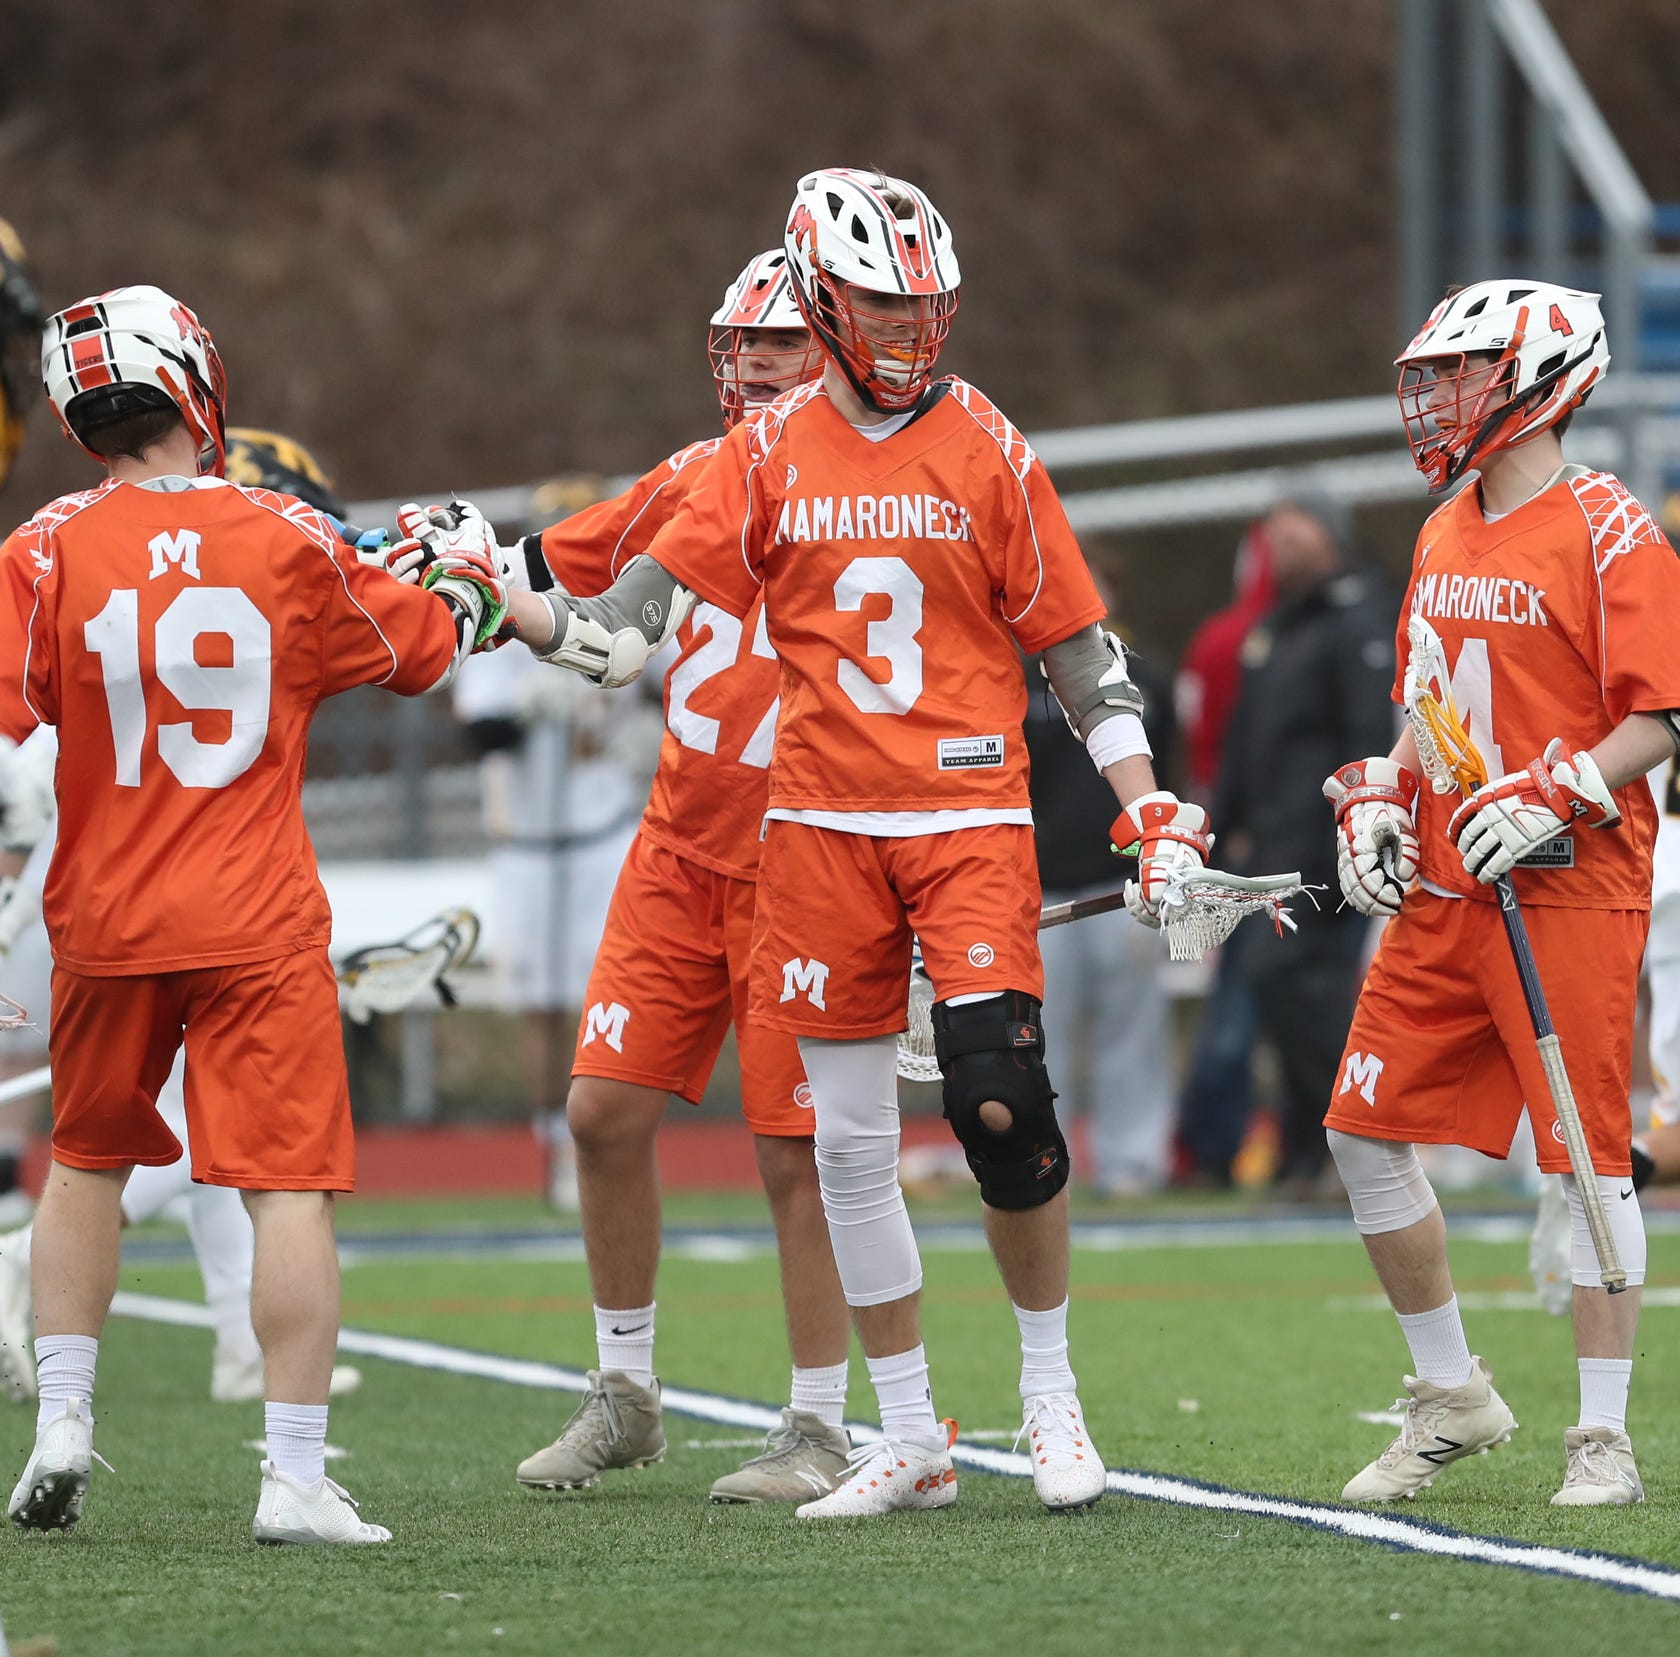 Boys lacrosse rankings: Mamaroneck is back at No. 1 where it started the season